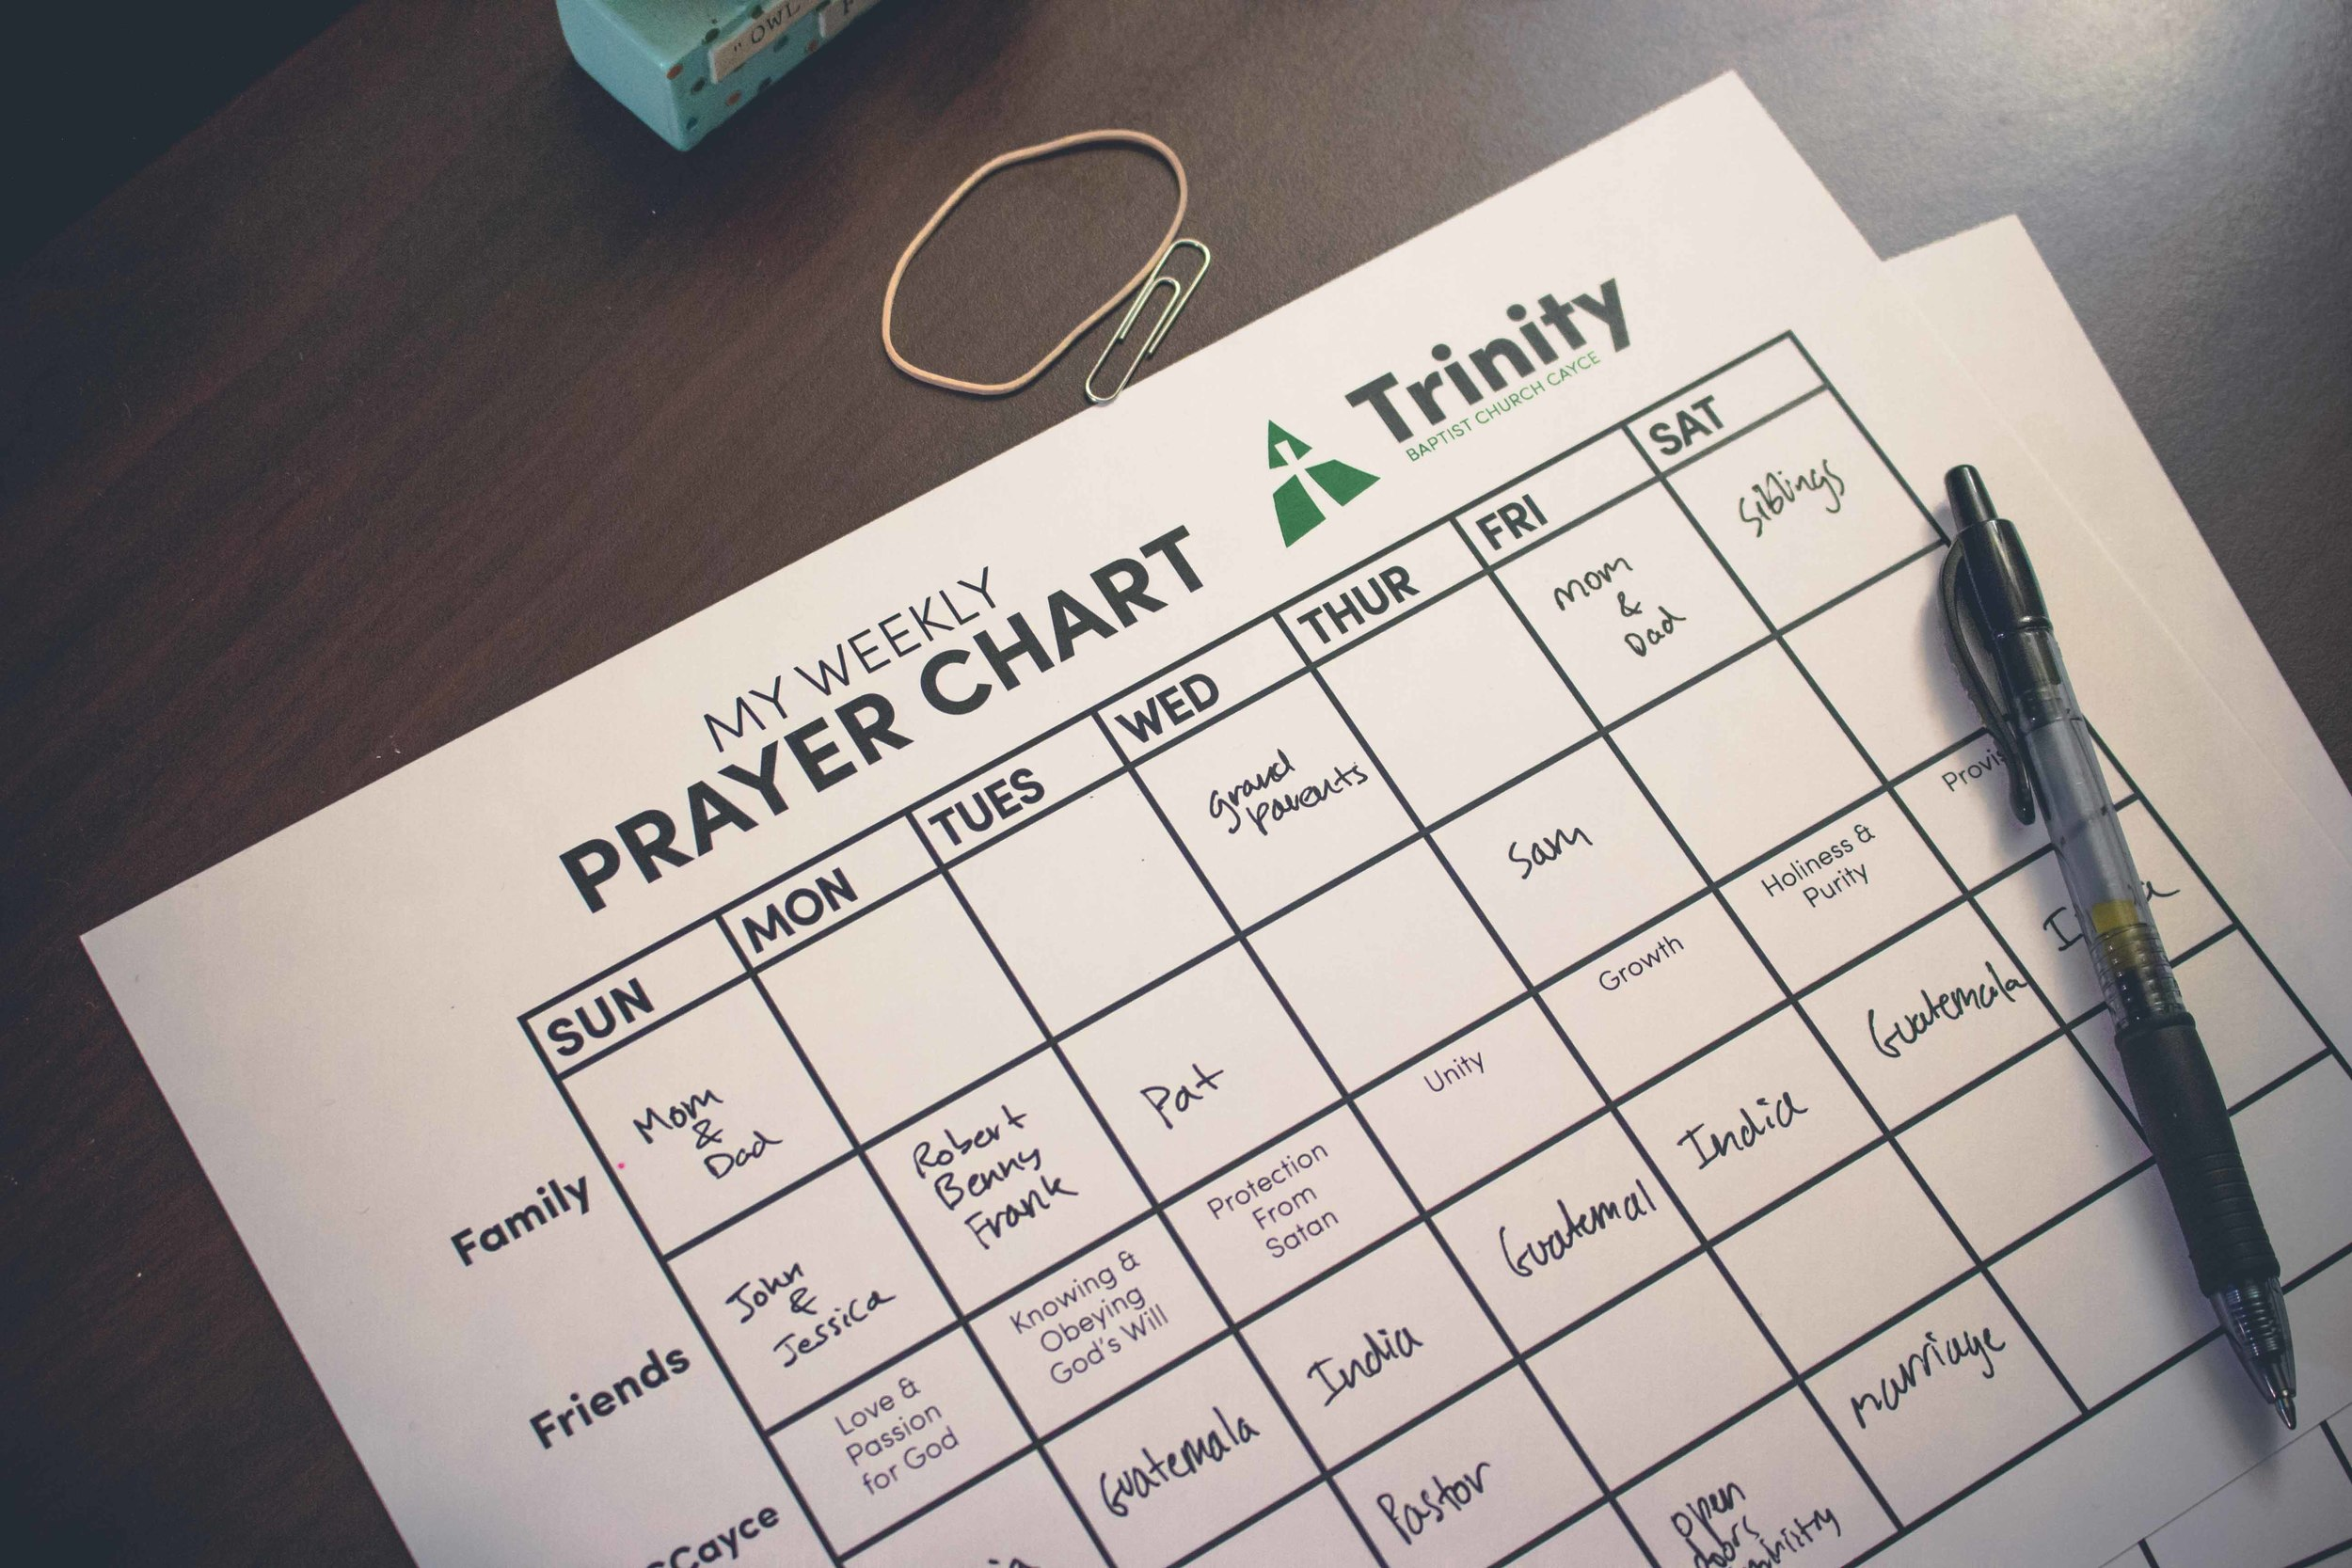 tbccayce weekly prayer chart